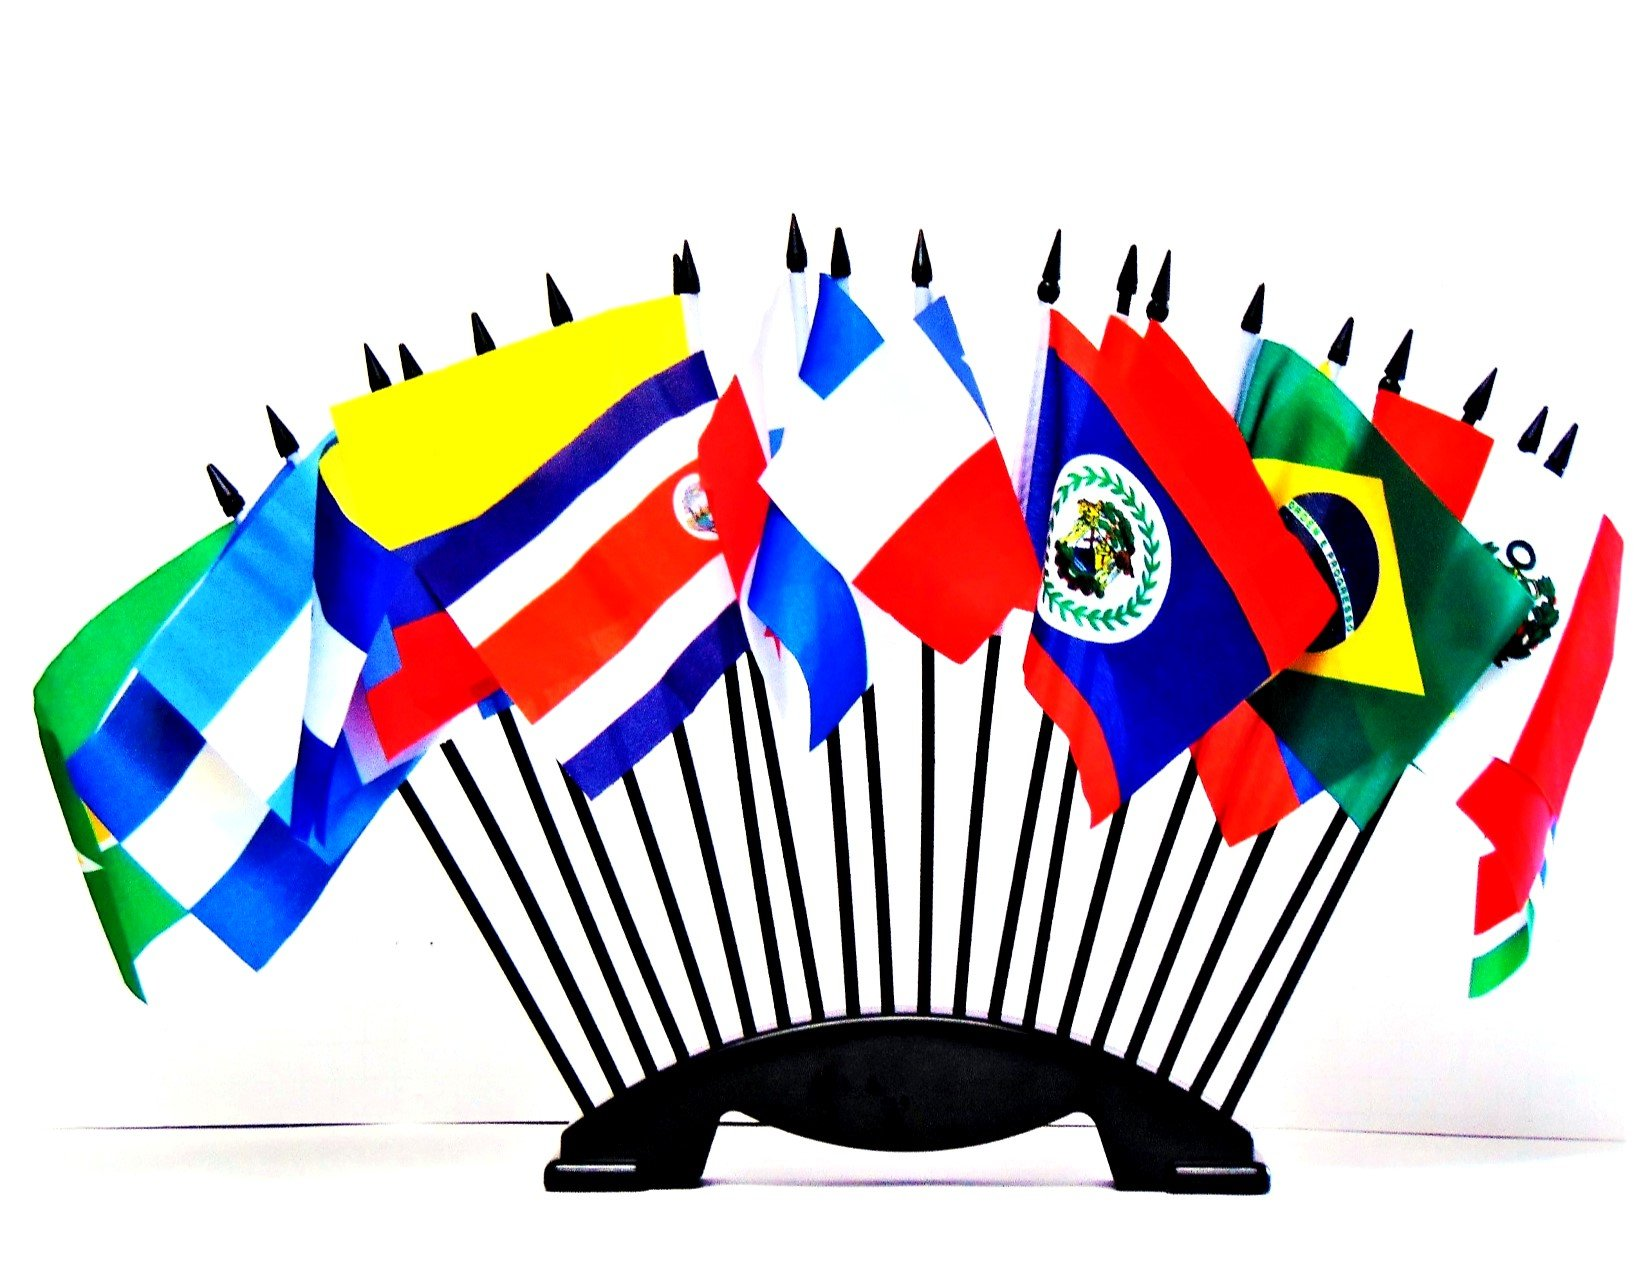 Central and South America World Flag Set with BASE-20 Polyester 4''x6'' Flags, One Flag for Each Country in Latin America, 4x6 Miniature Desk & Table Flags, Small Mini Stick Flags